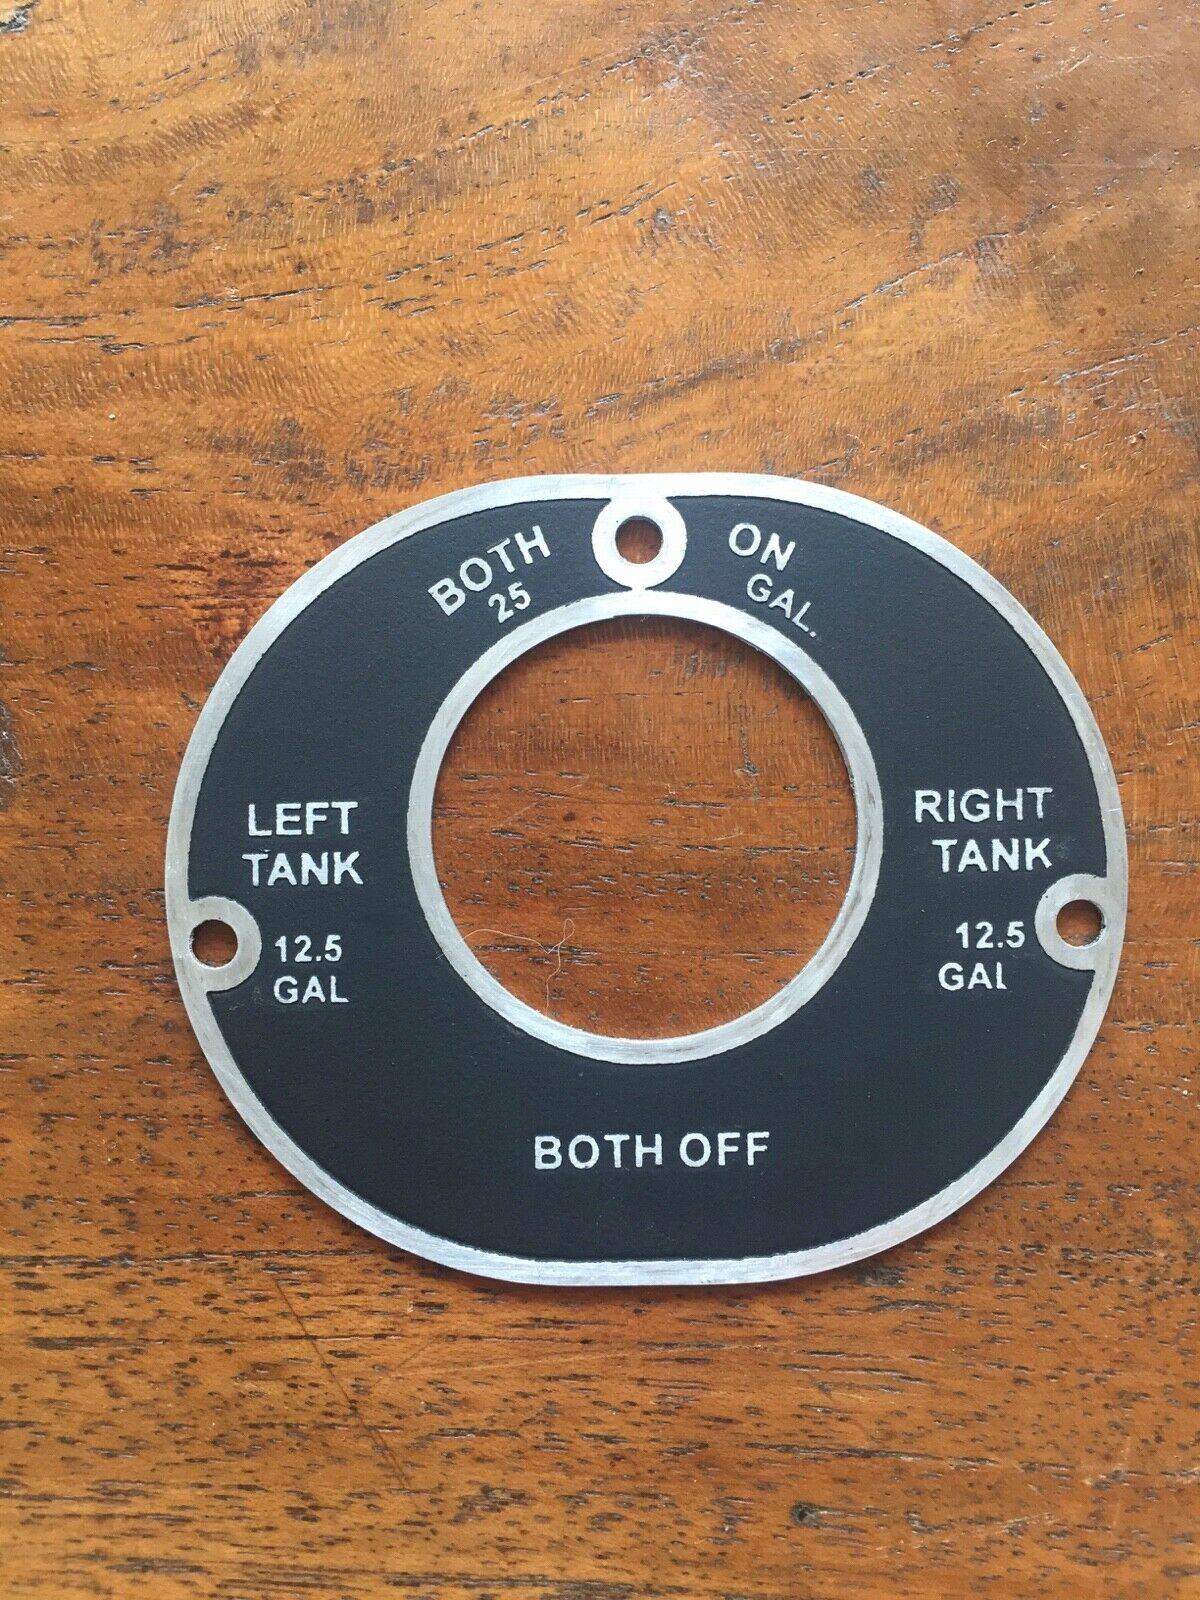 New Luscombe Fuel Selector Placard, Indicates 12.5 Gallons of Fuel Per Side